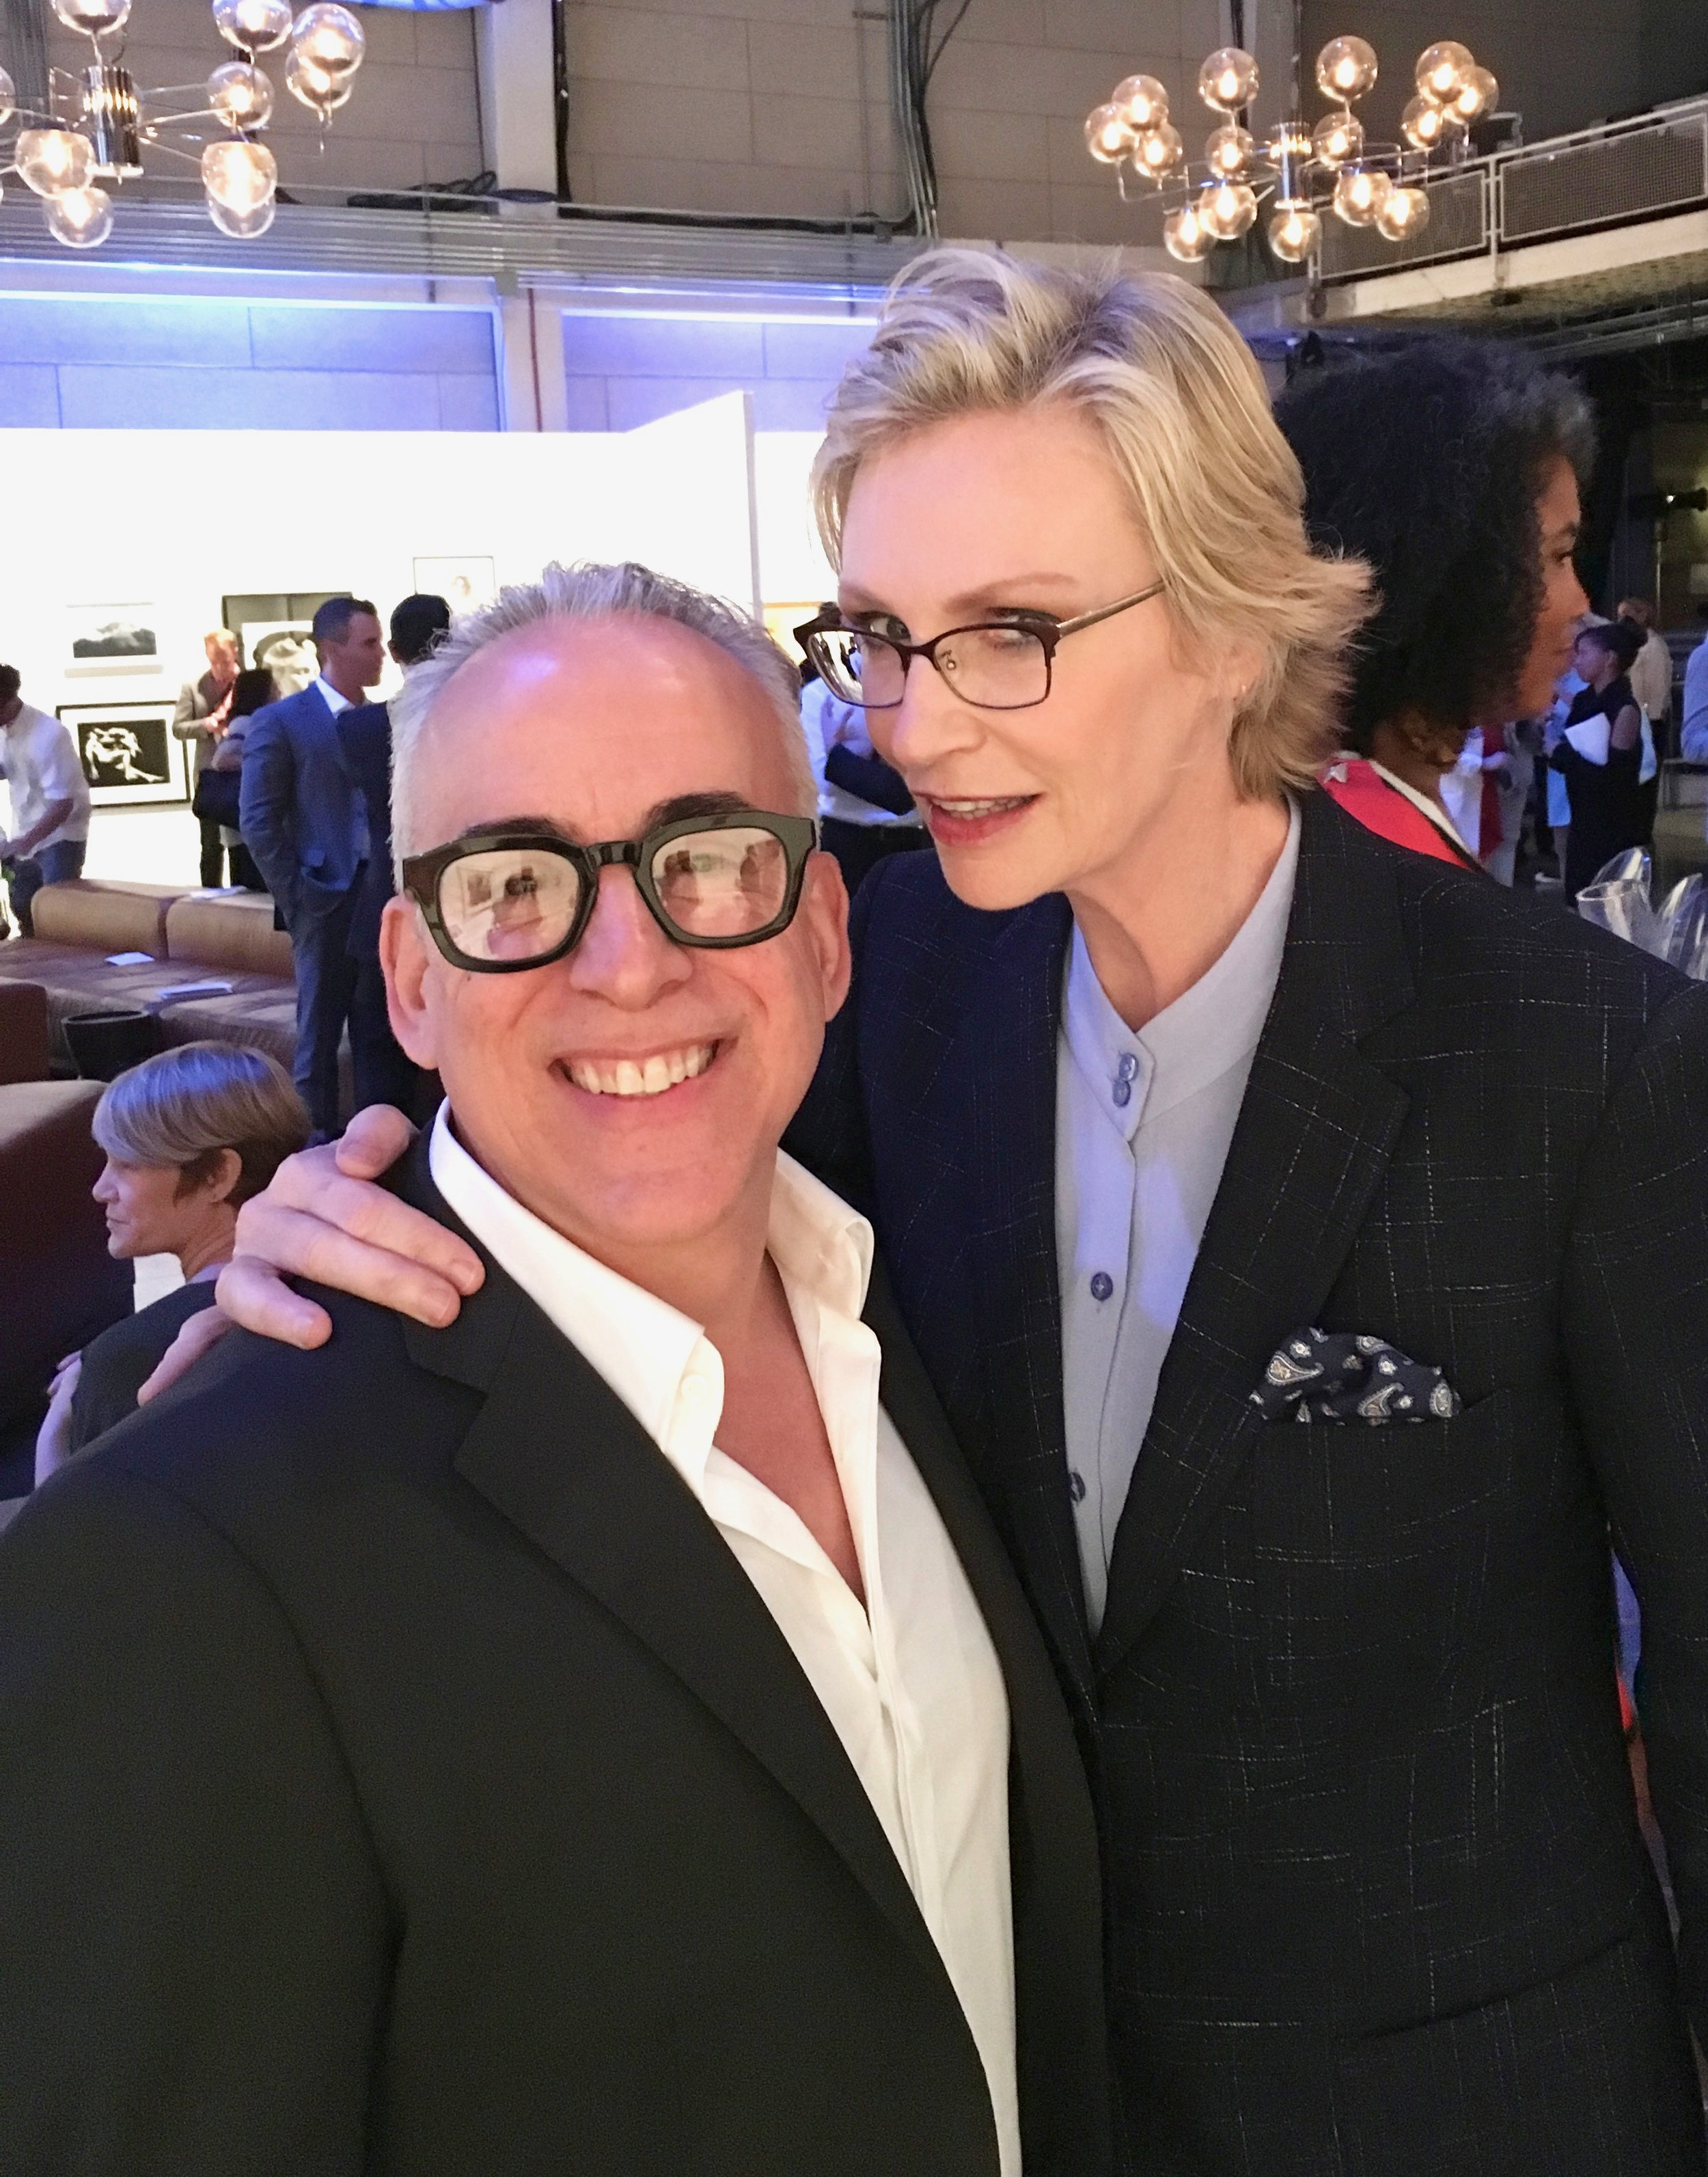 Project angel food benefit w/Jane Lynch